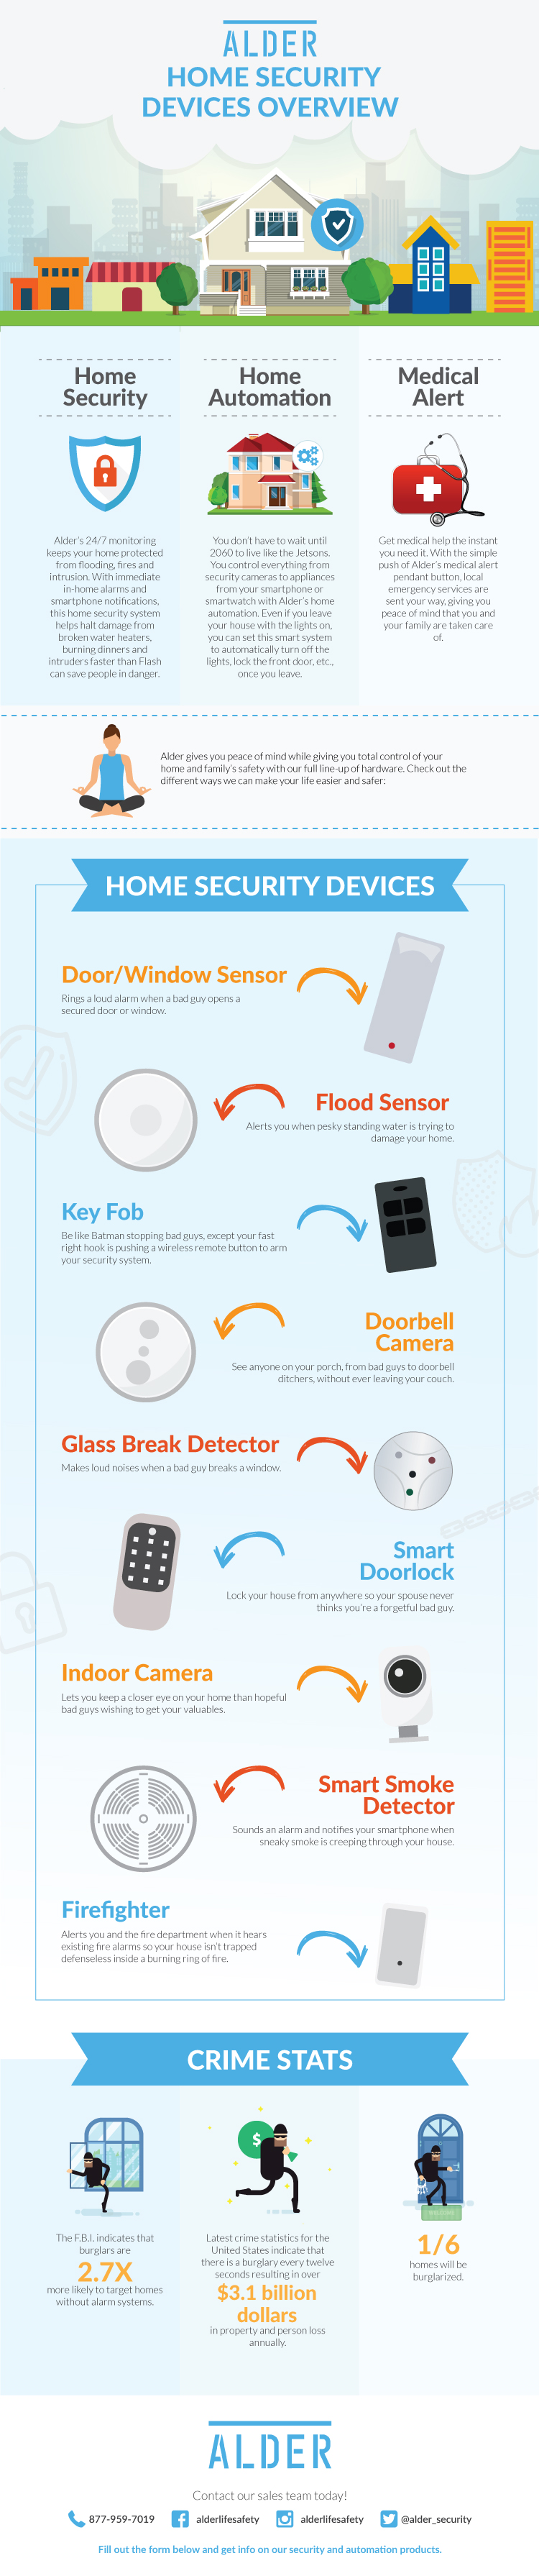 Protect-Your-Home-with-Home-Security-Devices-infographic-plaza